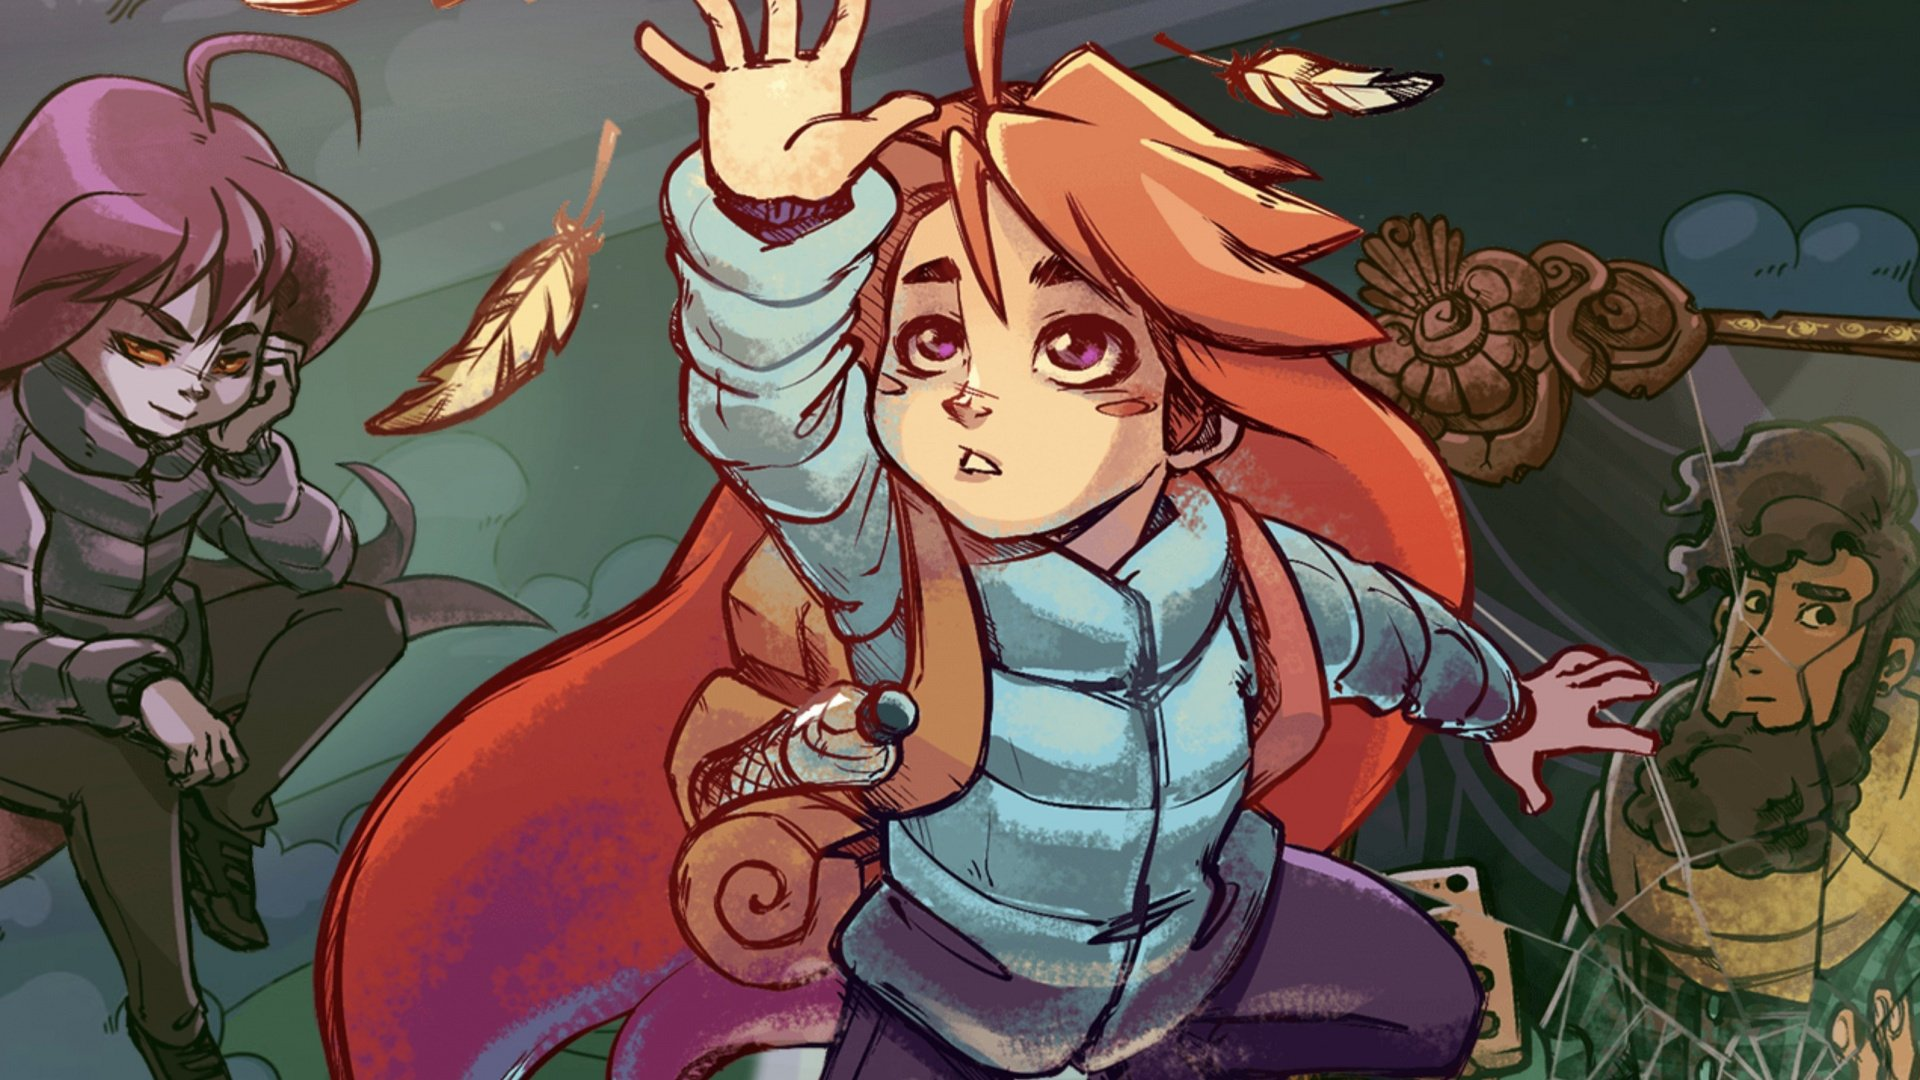 Celeste's 'Chapter 9' DLC will be available on September 9